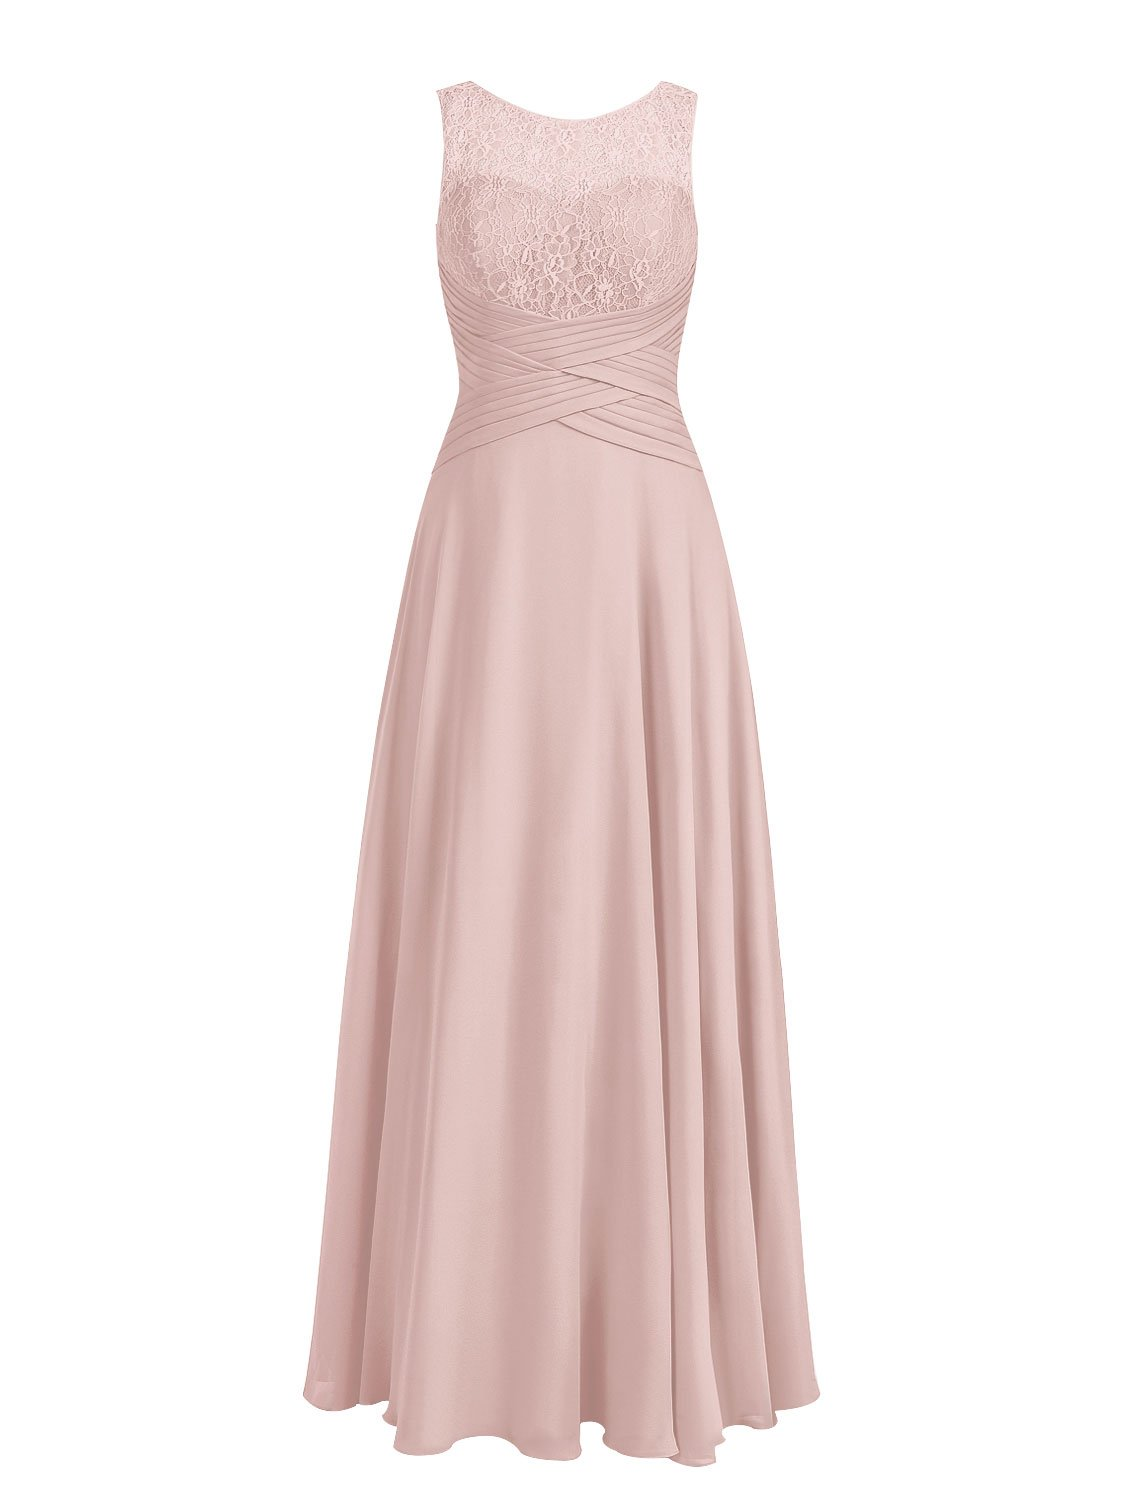 Cdress Bridesmaid Dresses Long Chiffon Prom Evening Dress Lace Wedding Party Gowns Dusty_Rose US 18W